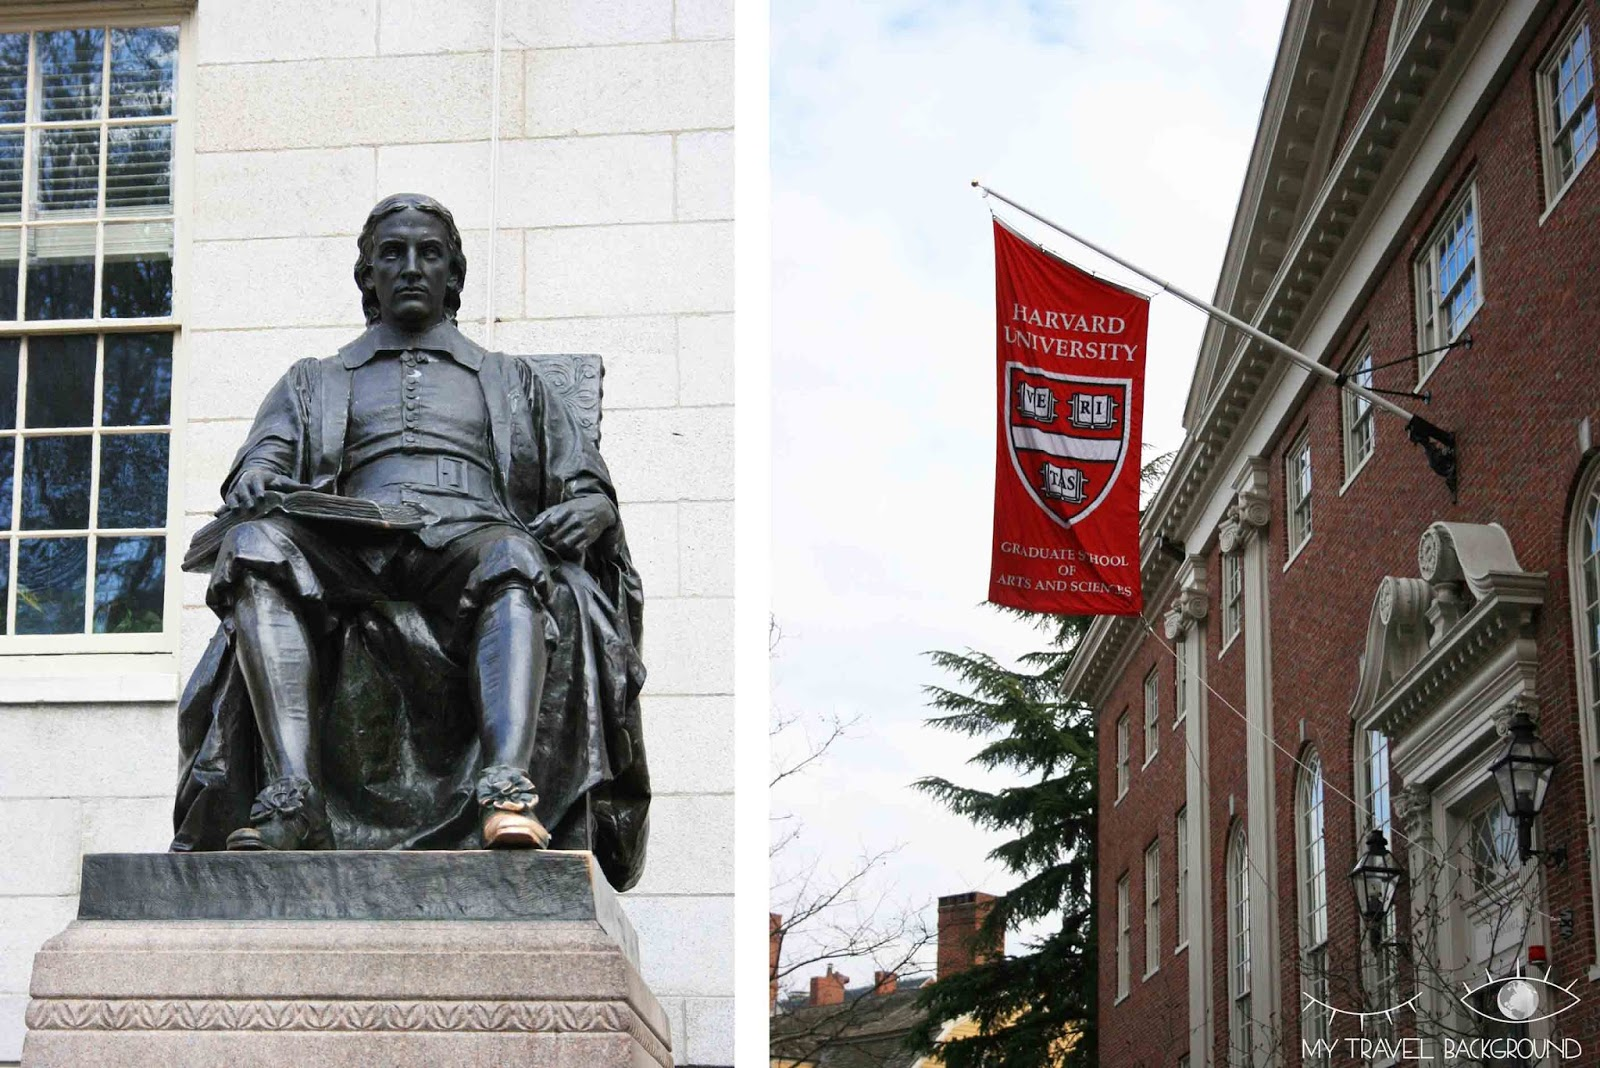 My Travel Background : Les principales universités américaines de la côte Nord-Est - Harvard University